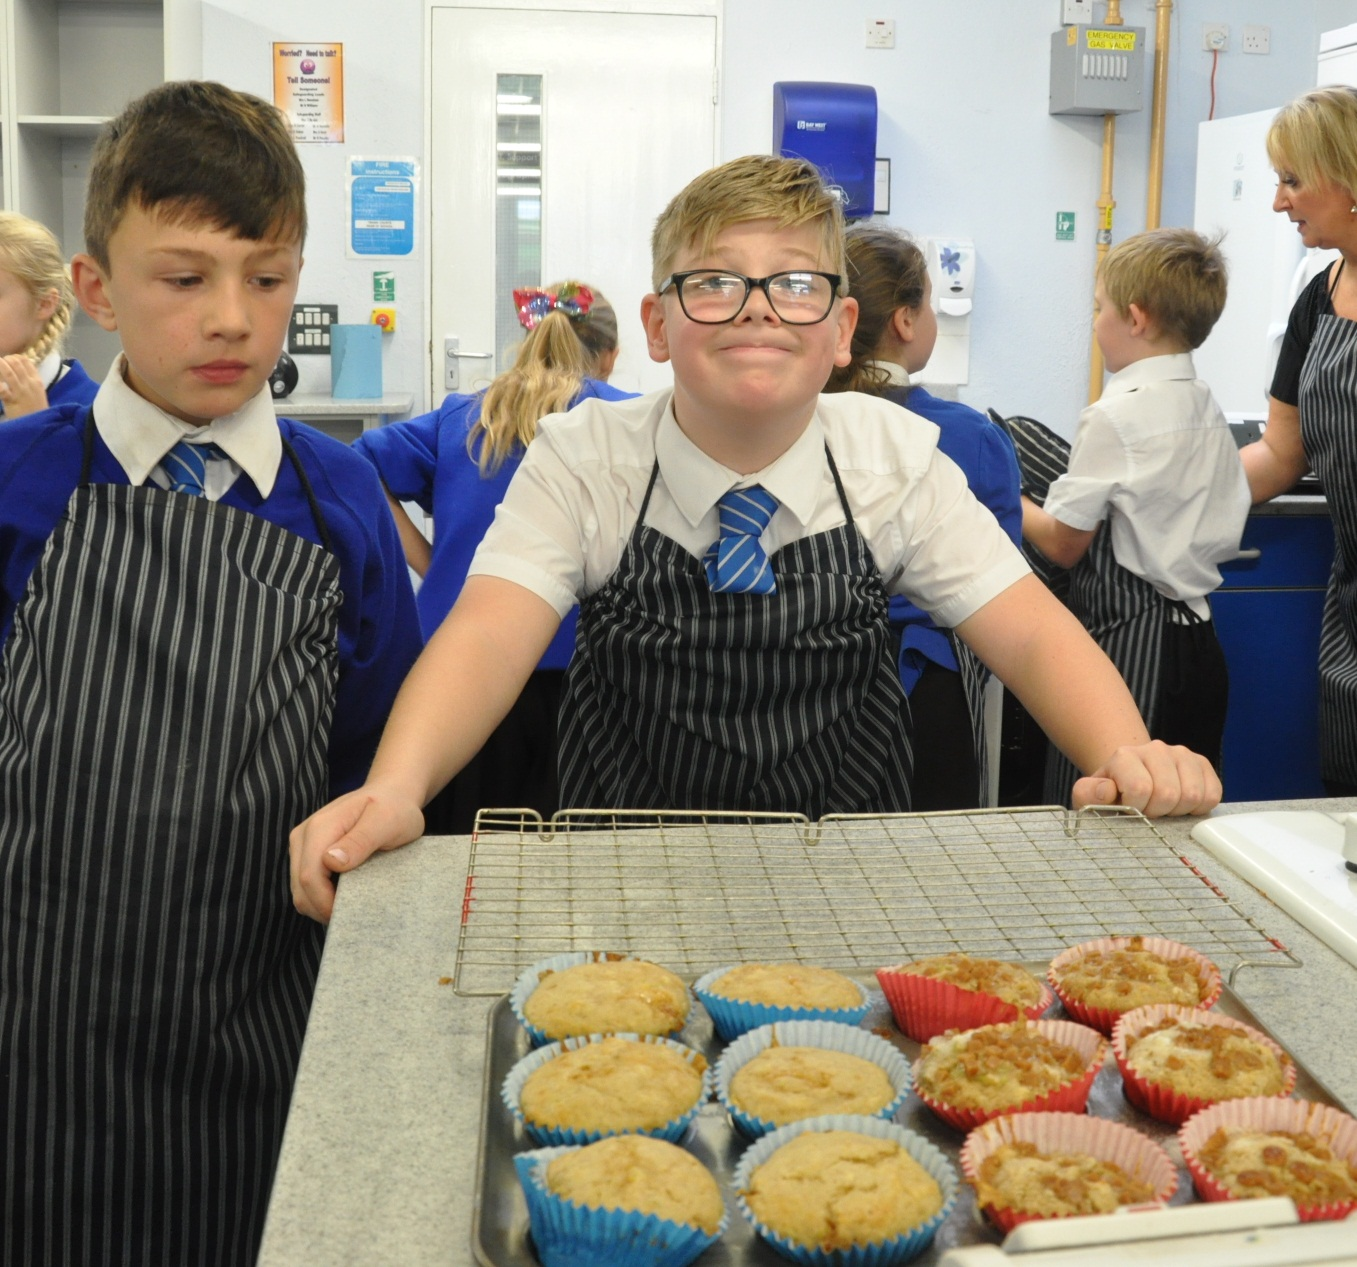 Tyler and Finlay with their muffins